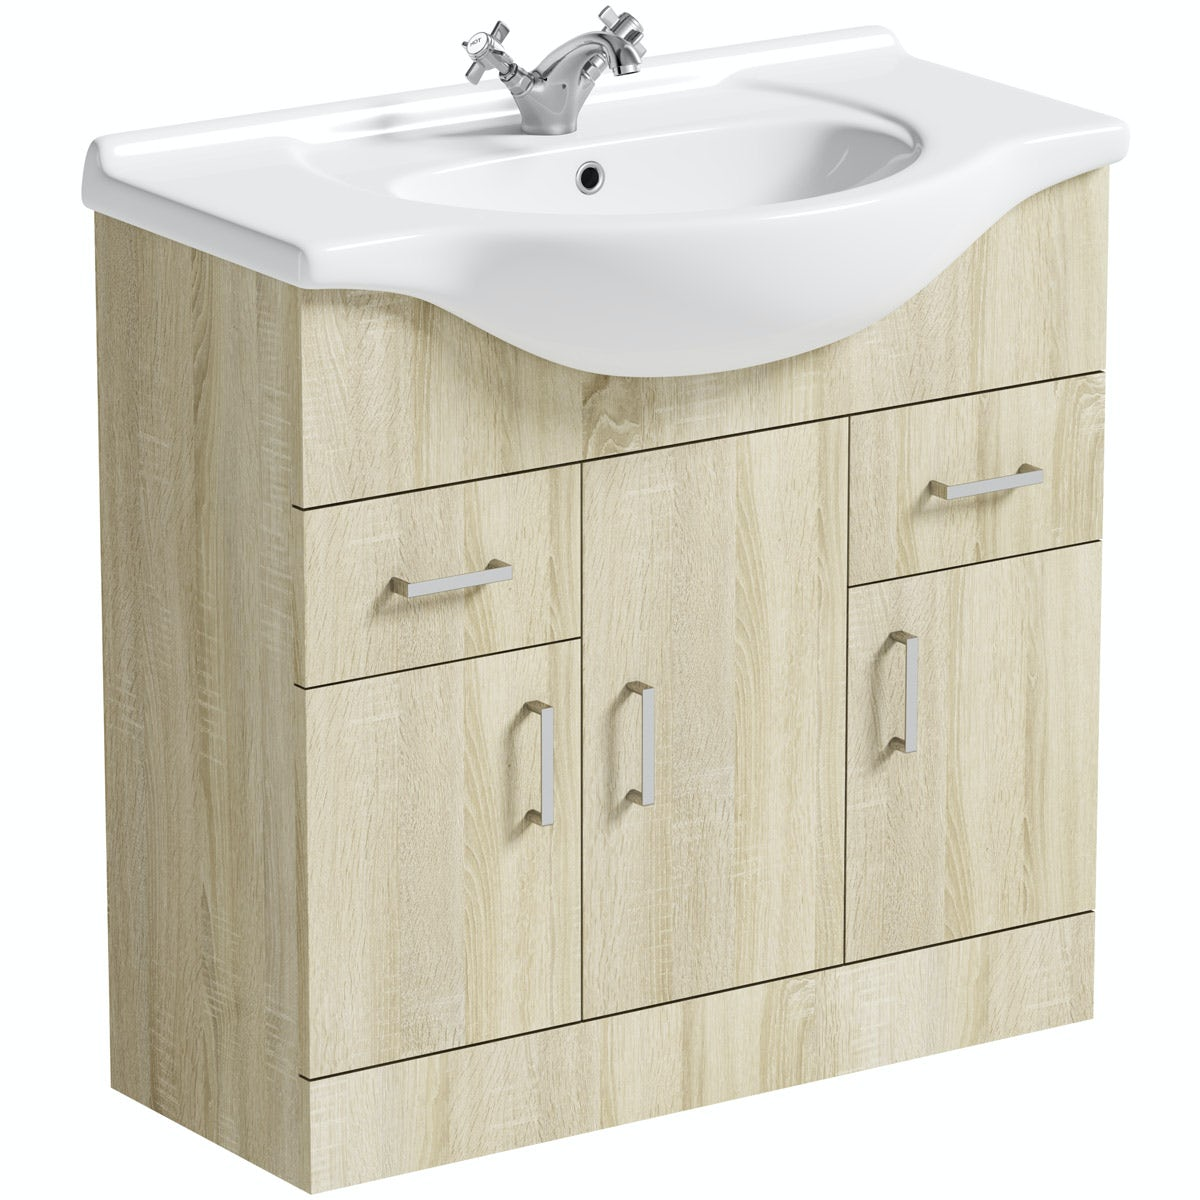 Orchard Eden oak vanity unit and basin 850mm